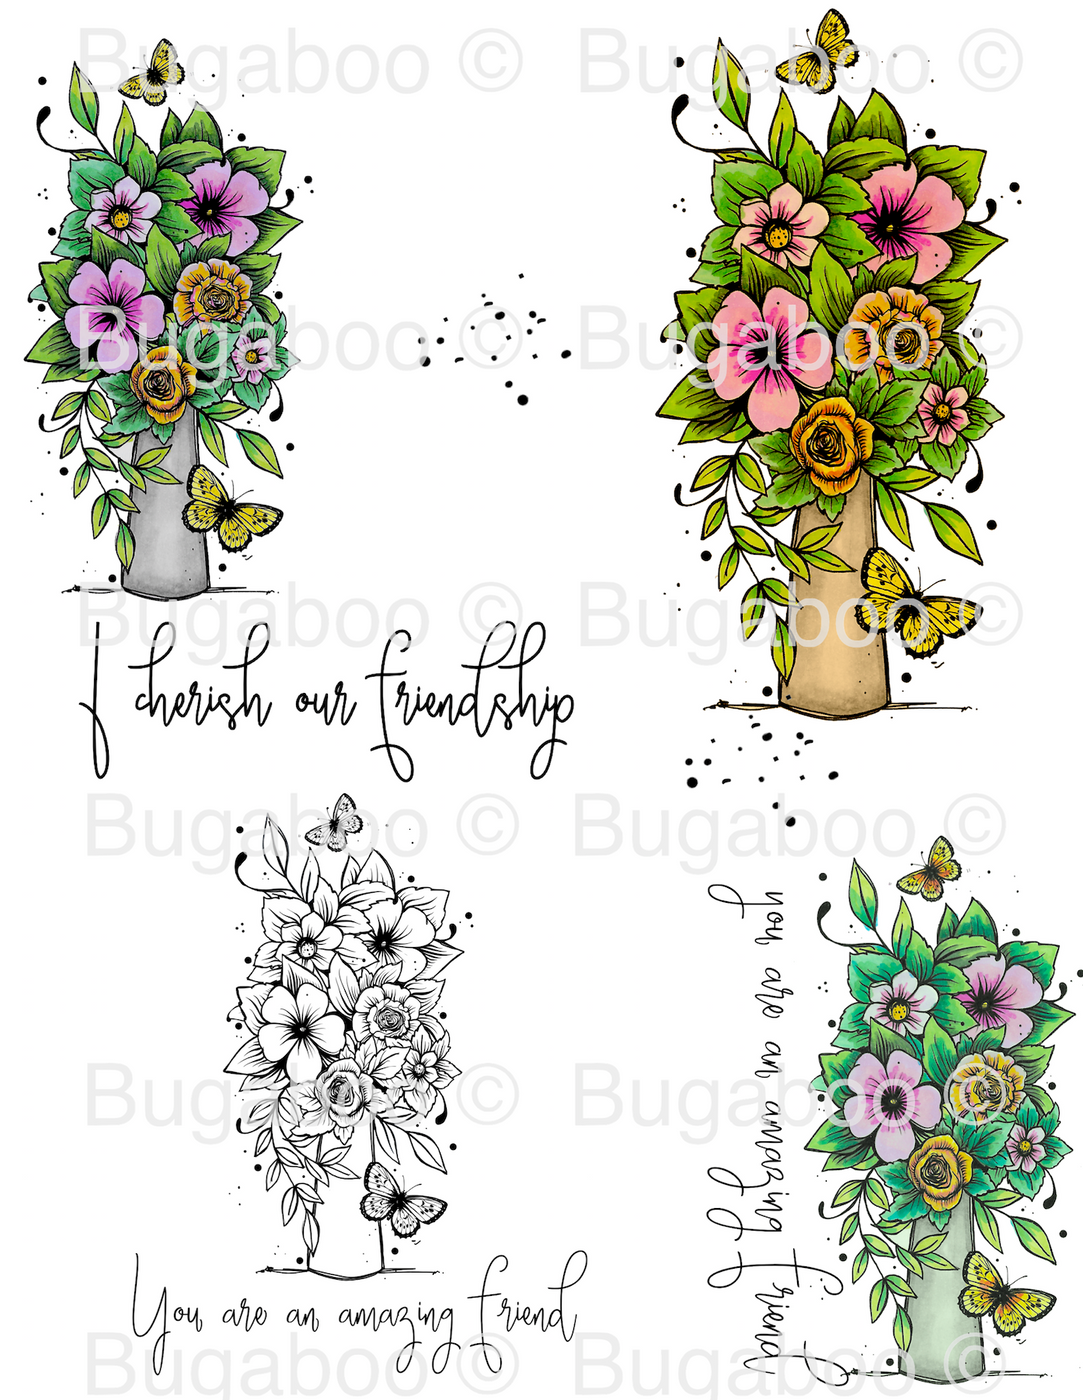 Vase of Flowers Digital Stamp Set, DIGI924BG